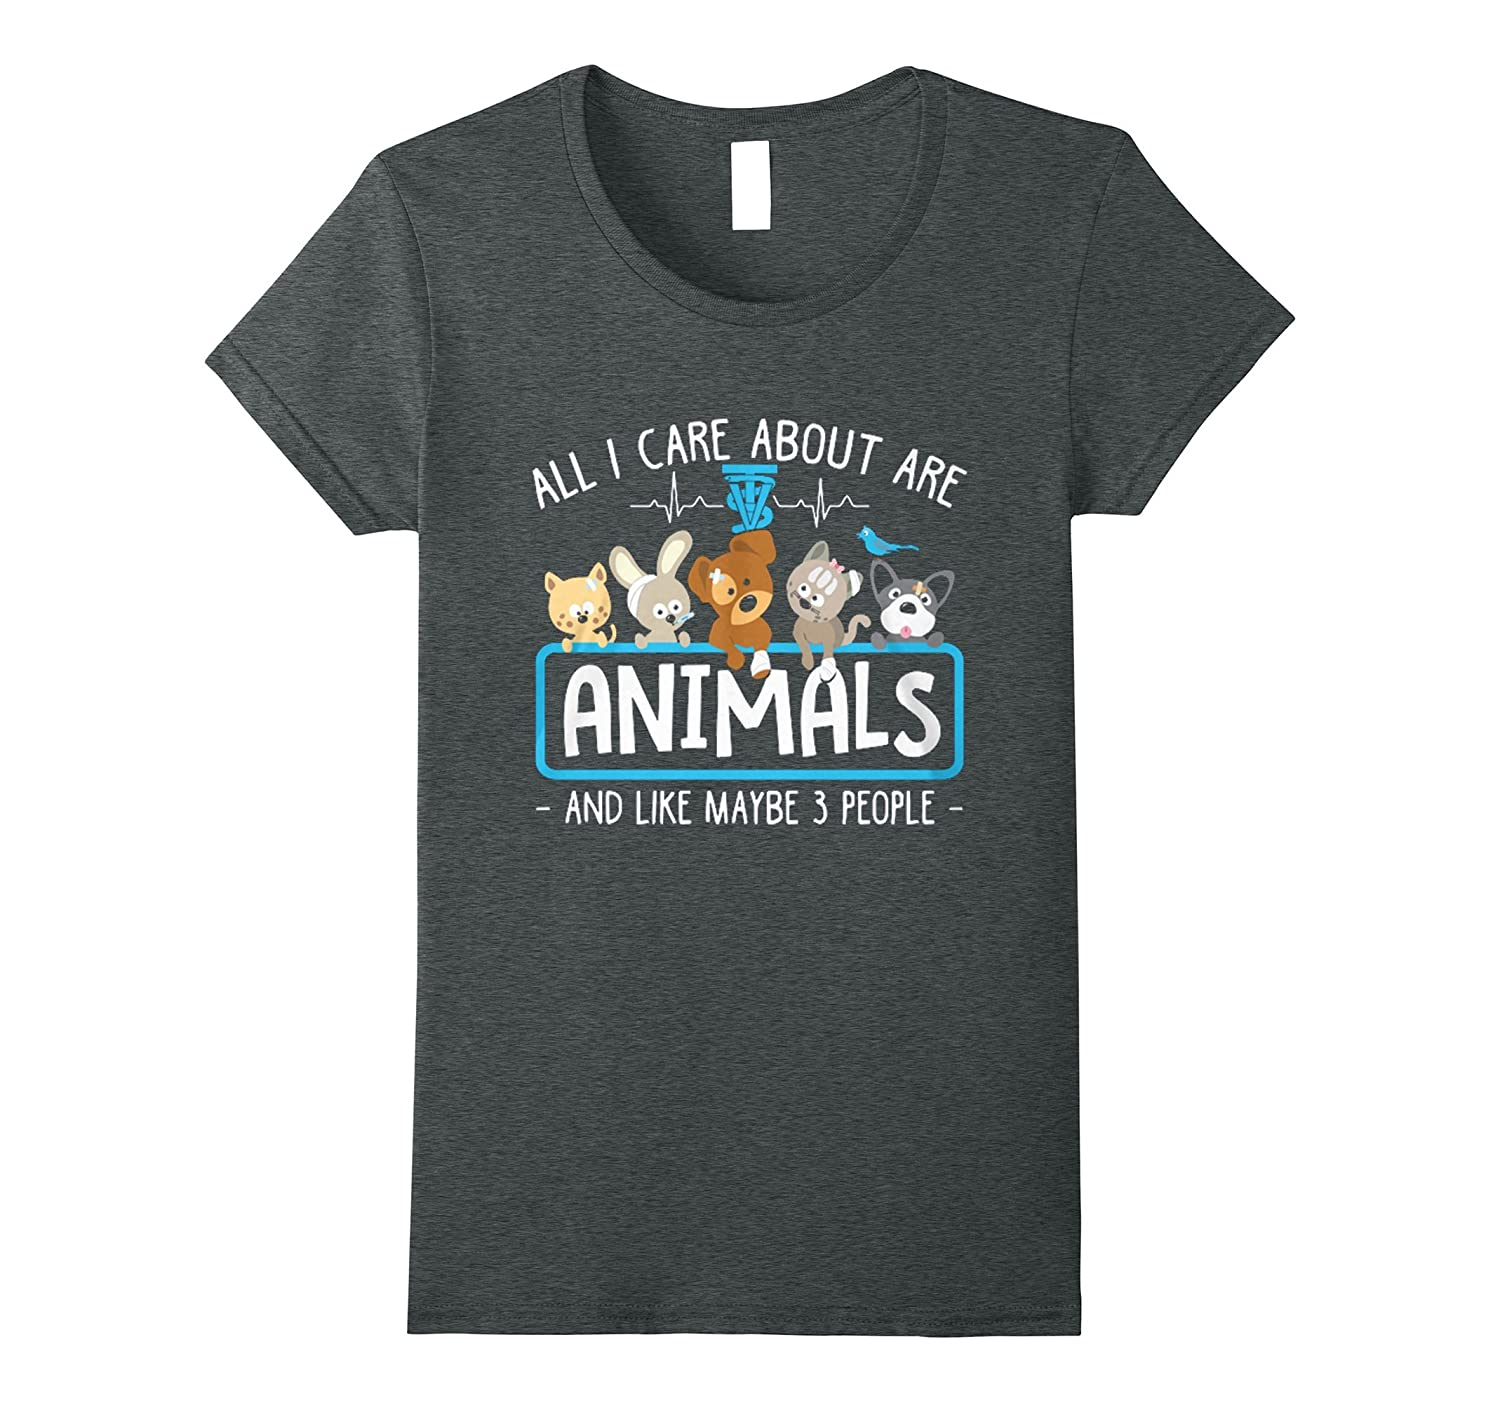 All I care about are animals and maybe like 3 people shirt